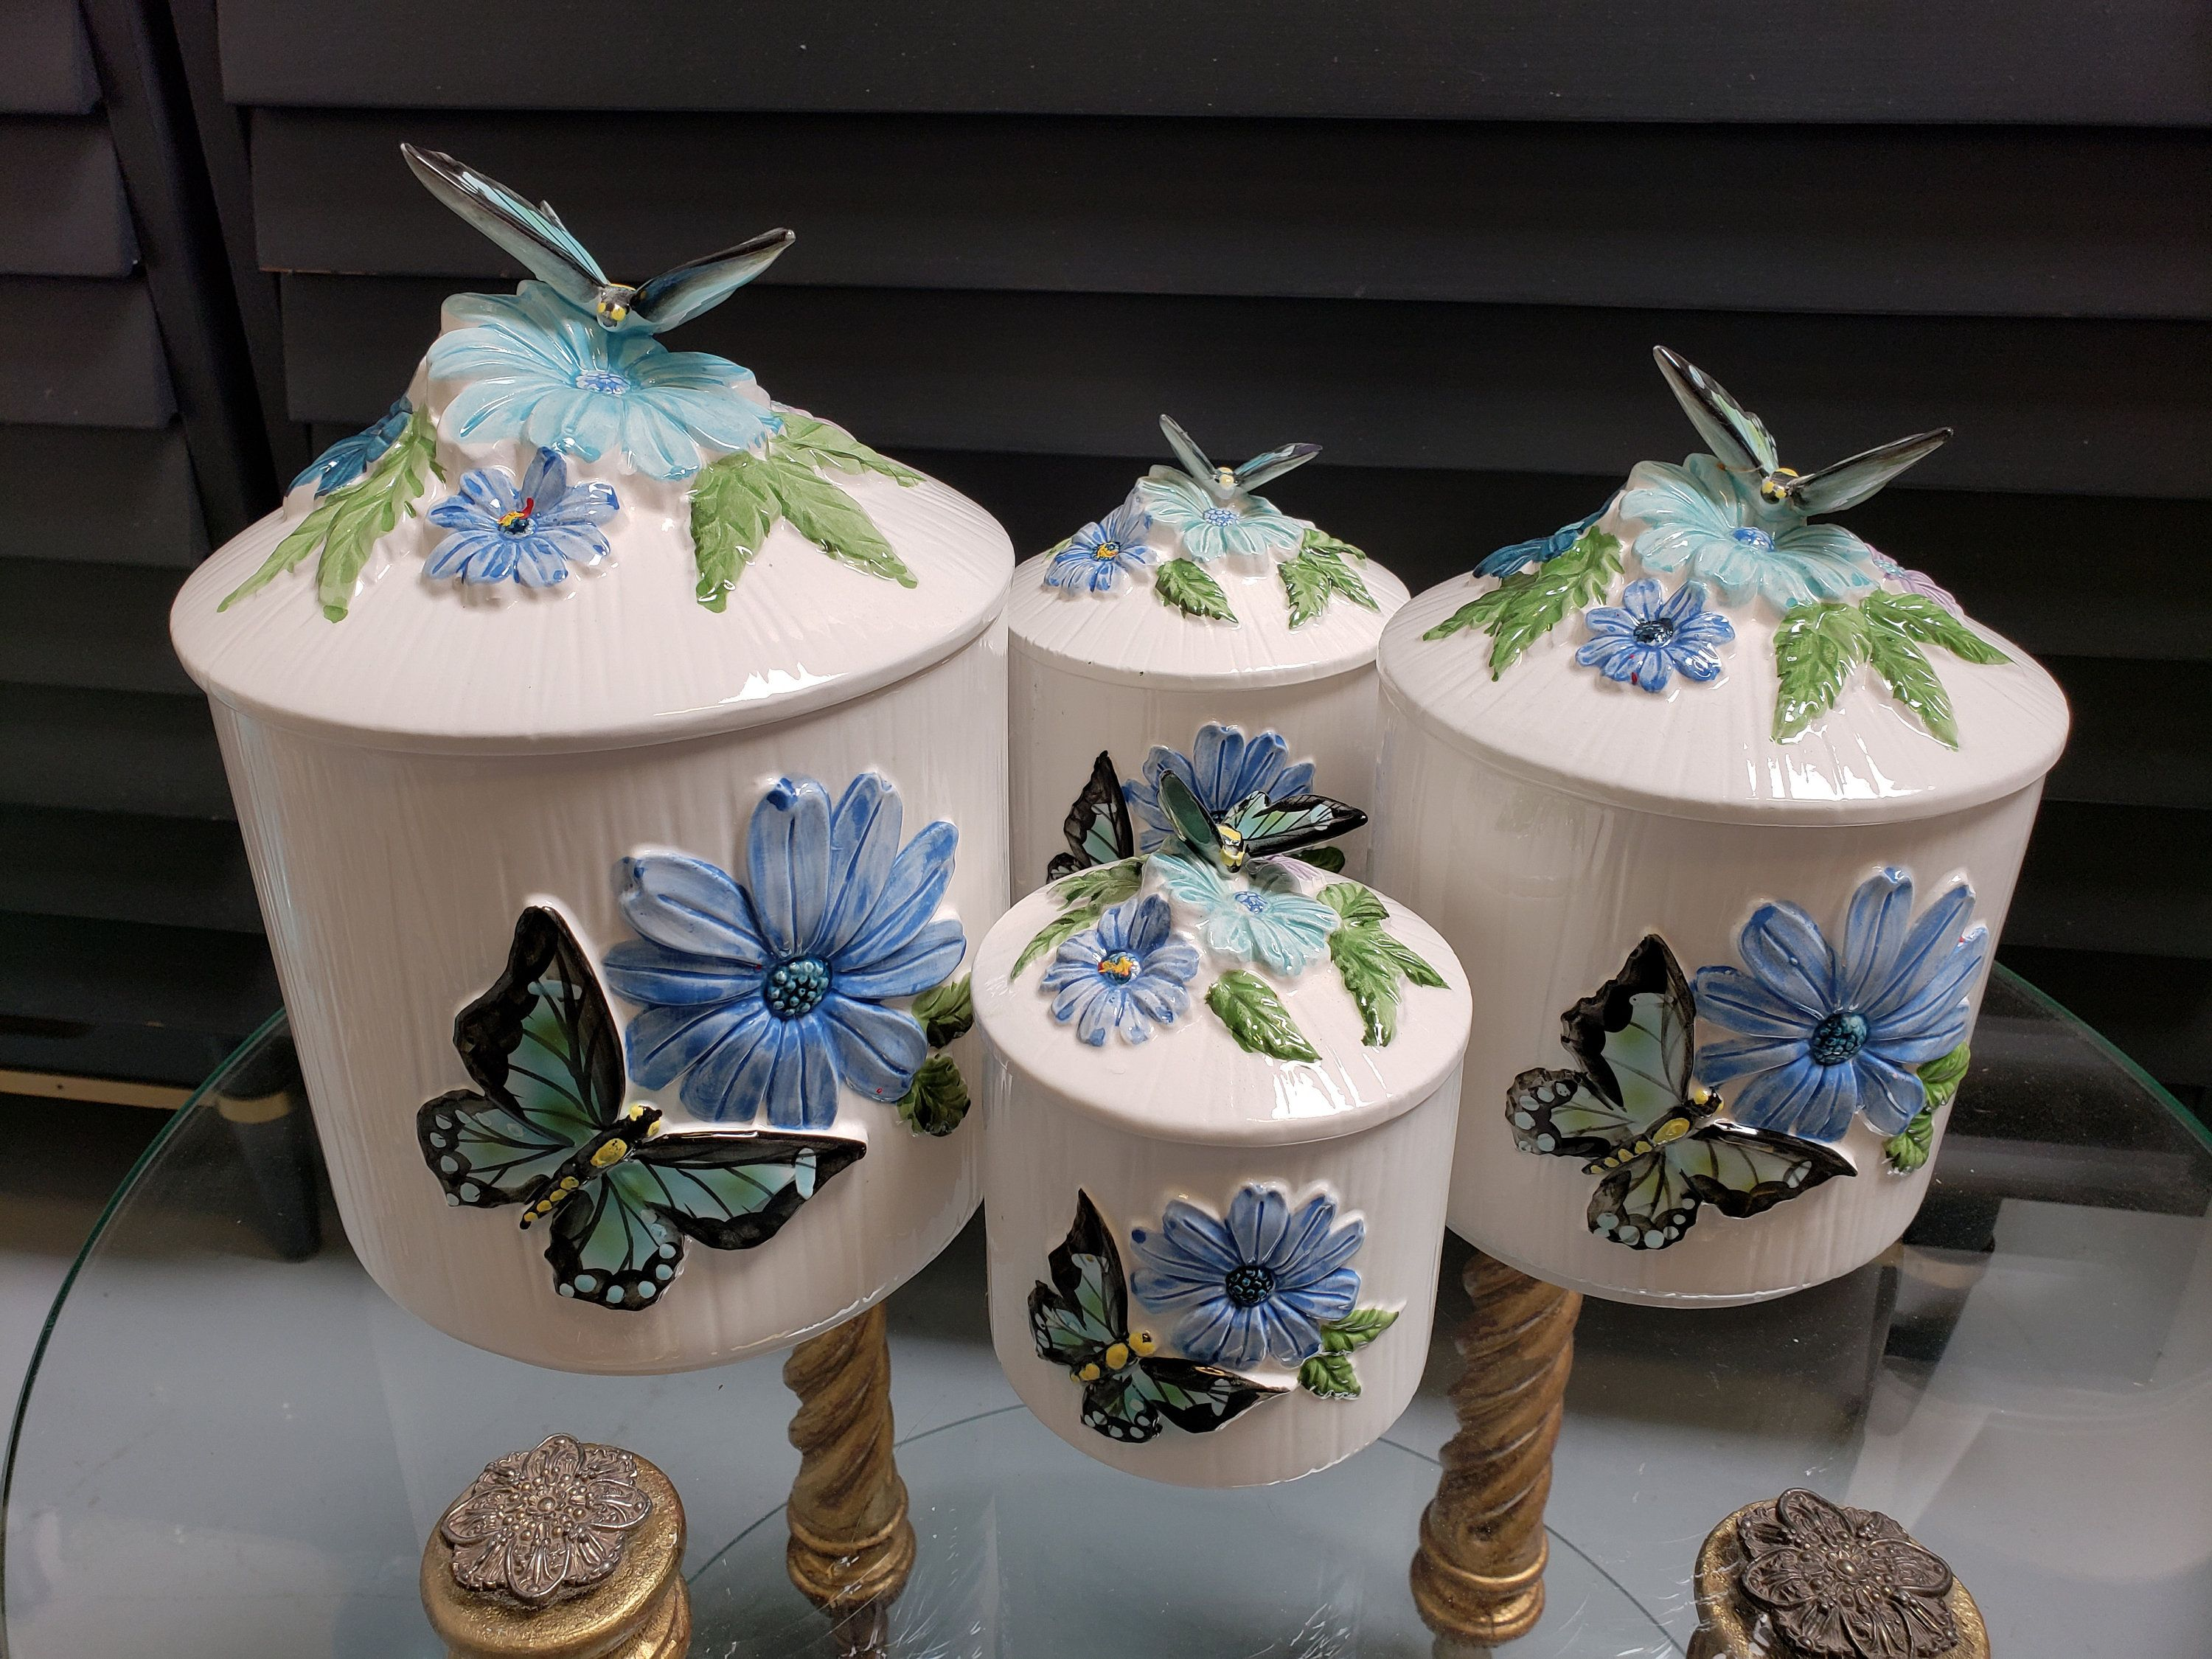 Ceramic Butterfly Canister Set Mid Century Canister Set Set Of 4 Butterfly Kitchen Decor Japan Ceramic Canisters Vintagesouthwest Ceramic Canister Set Ceramic Canisters Canister Sets